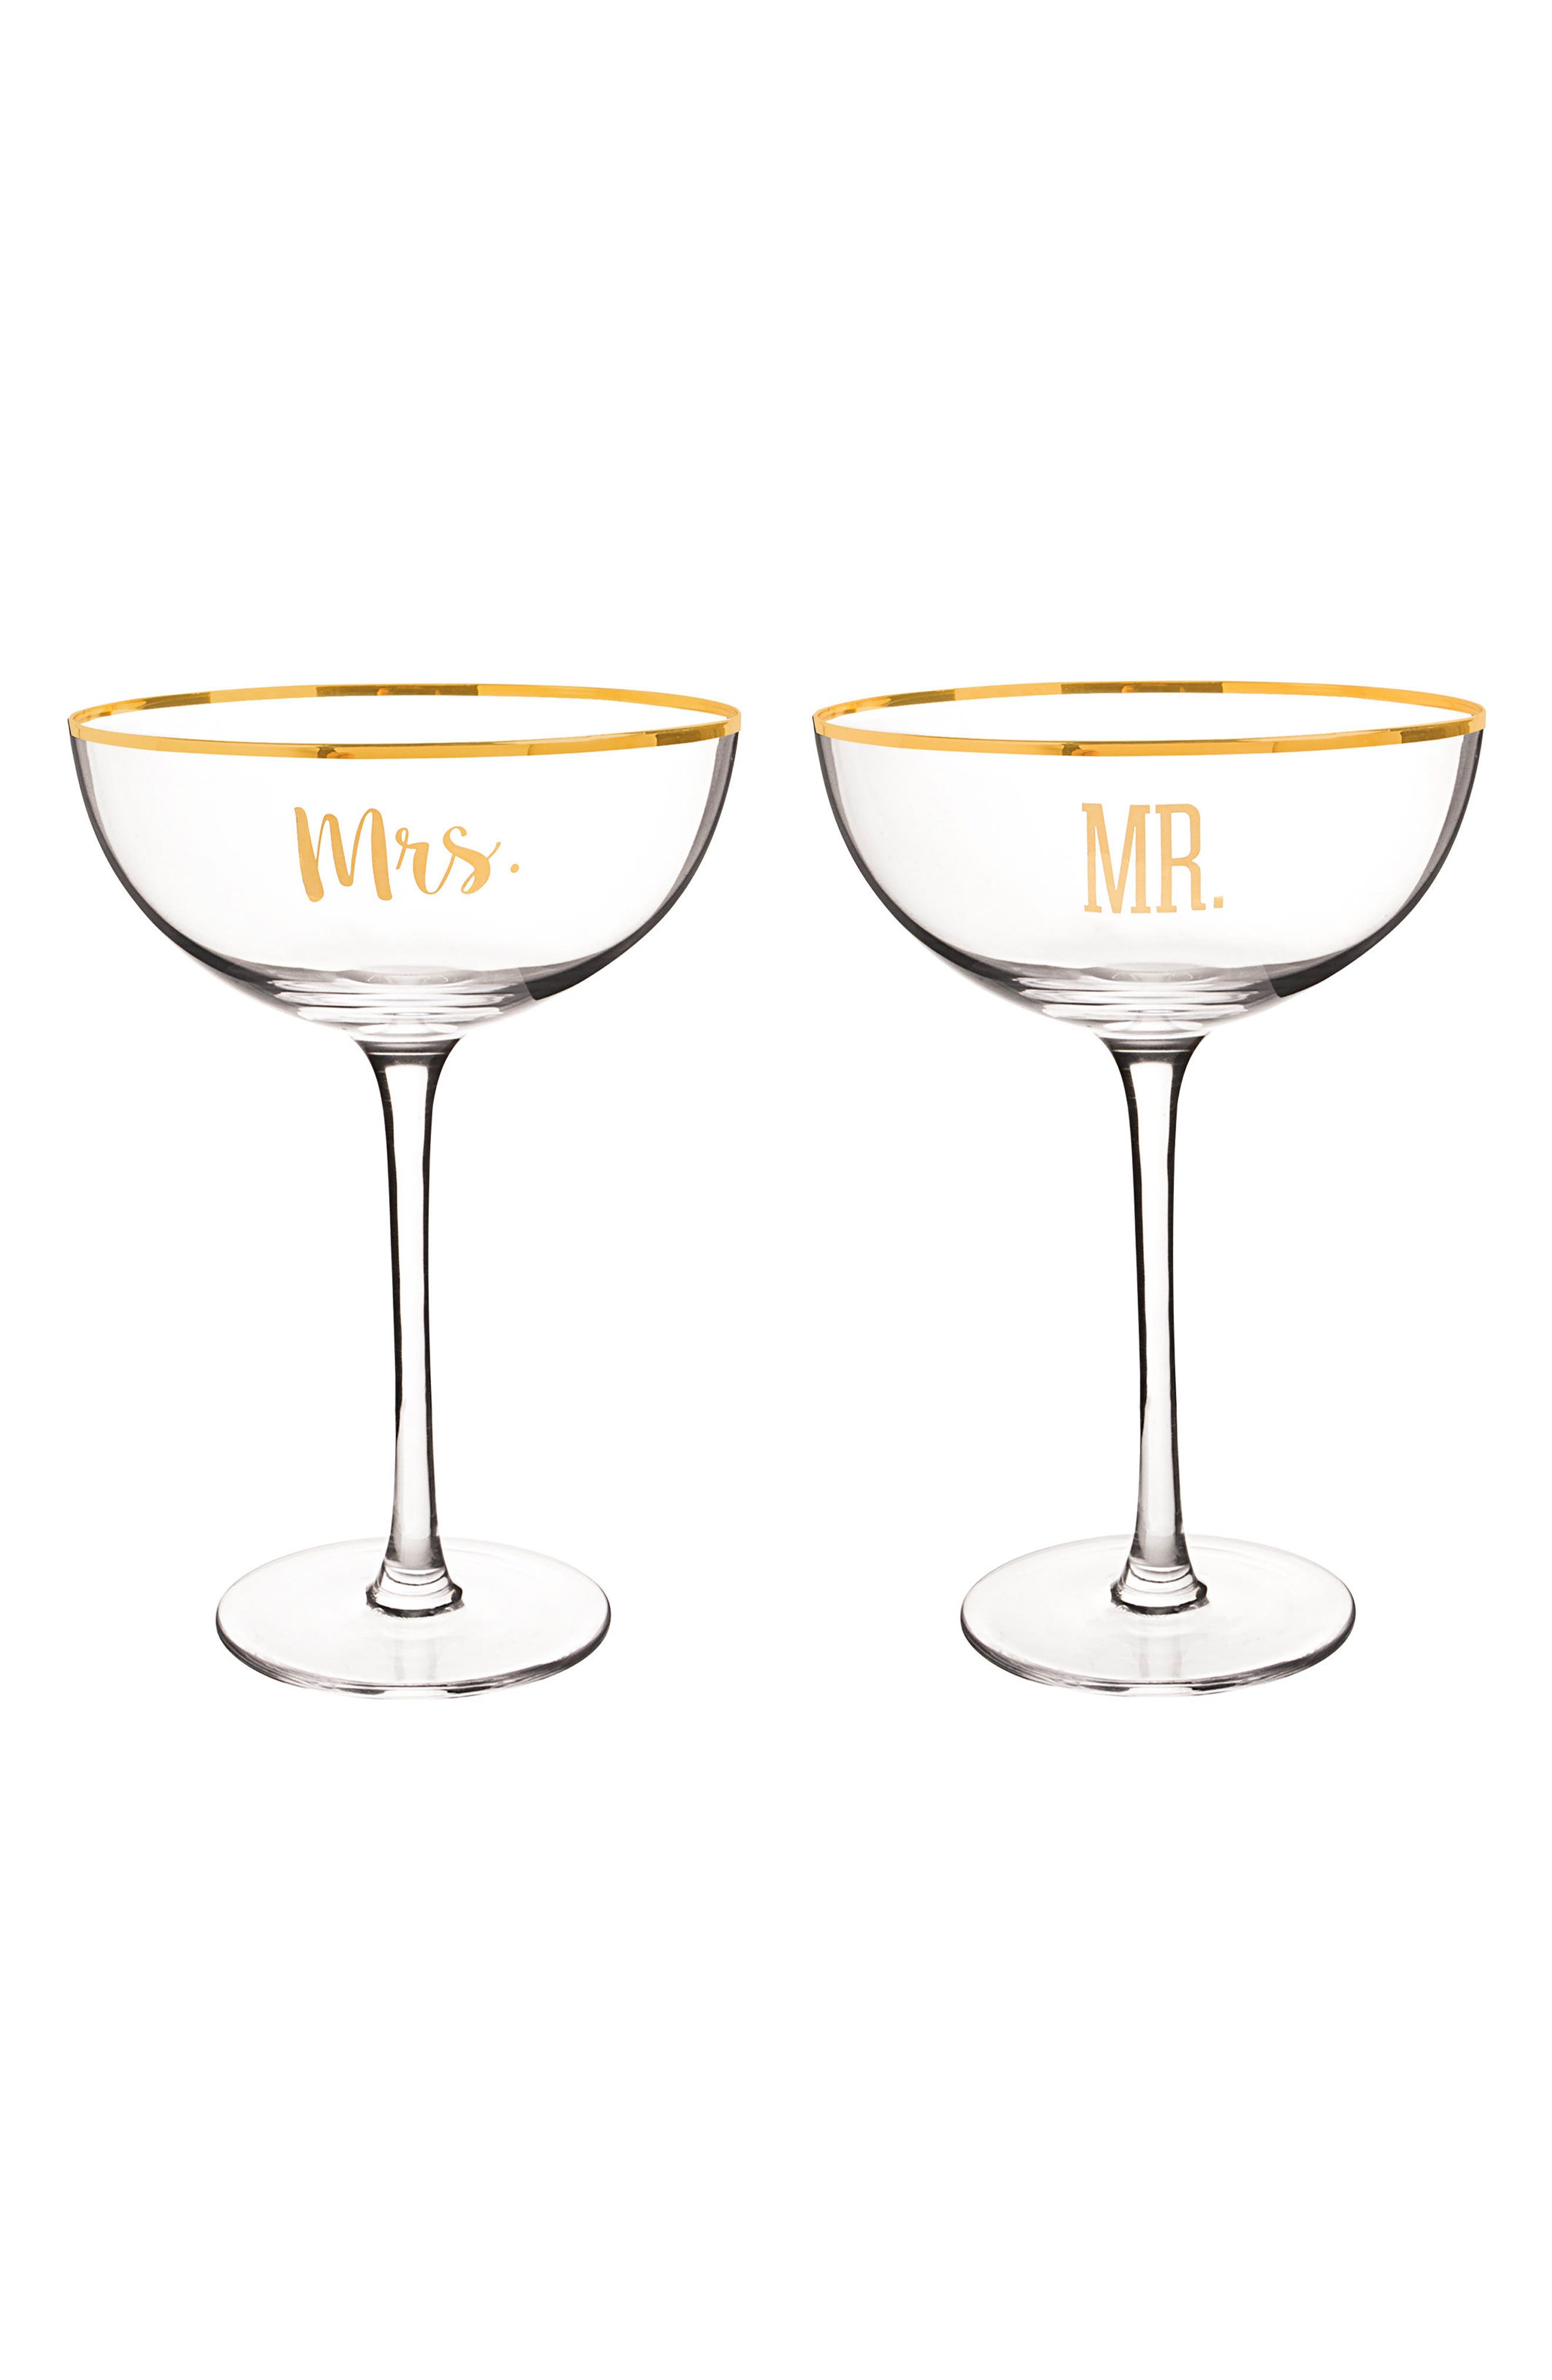 Mr. & Mrs. Set of 2 Champagne Coupe Toasting Glasses,                             Main thumbnail 1, color,                             710